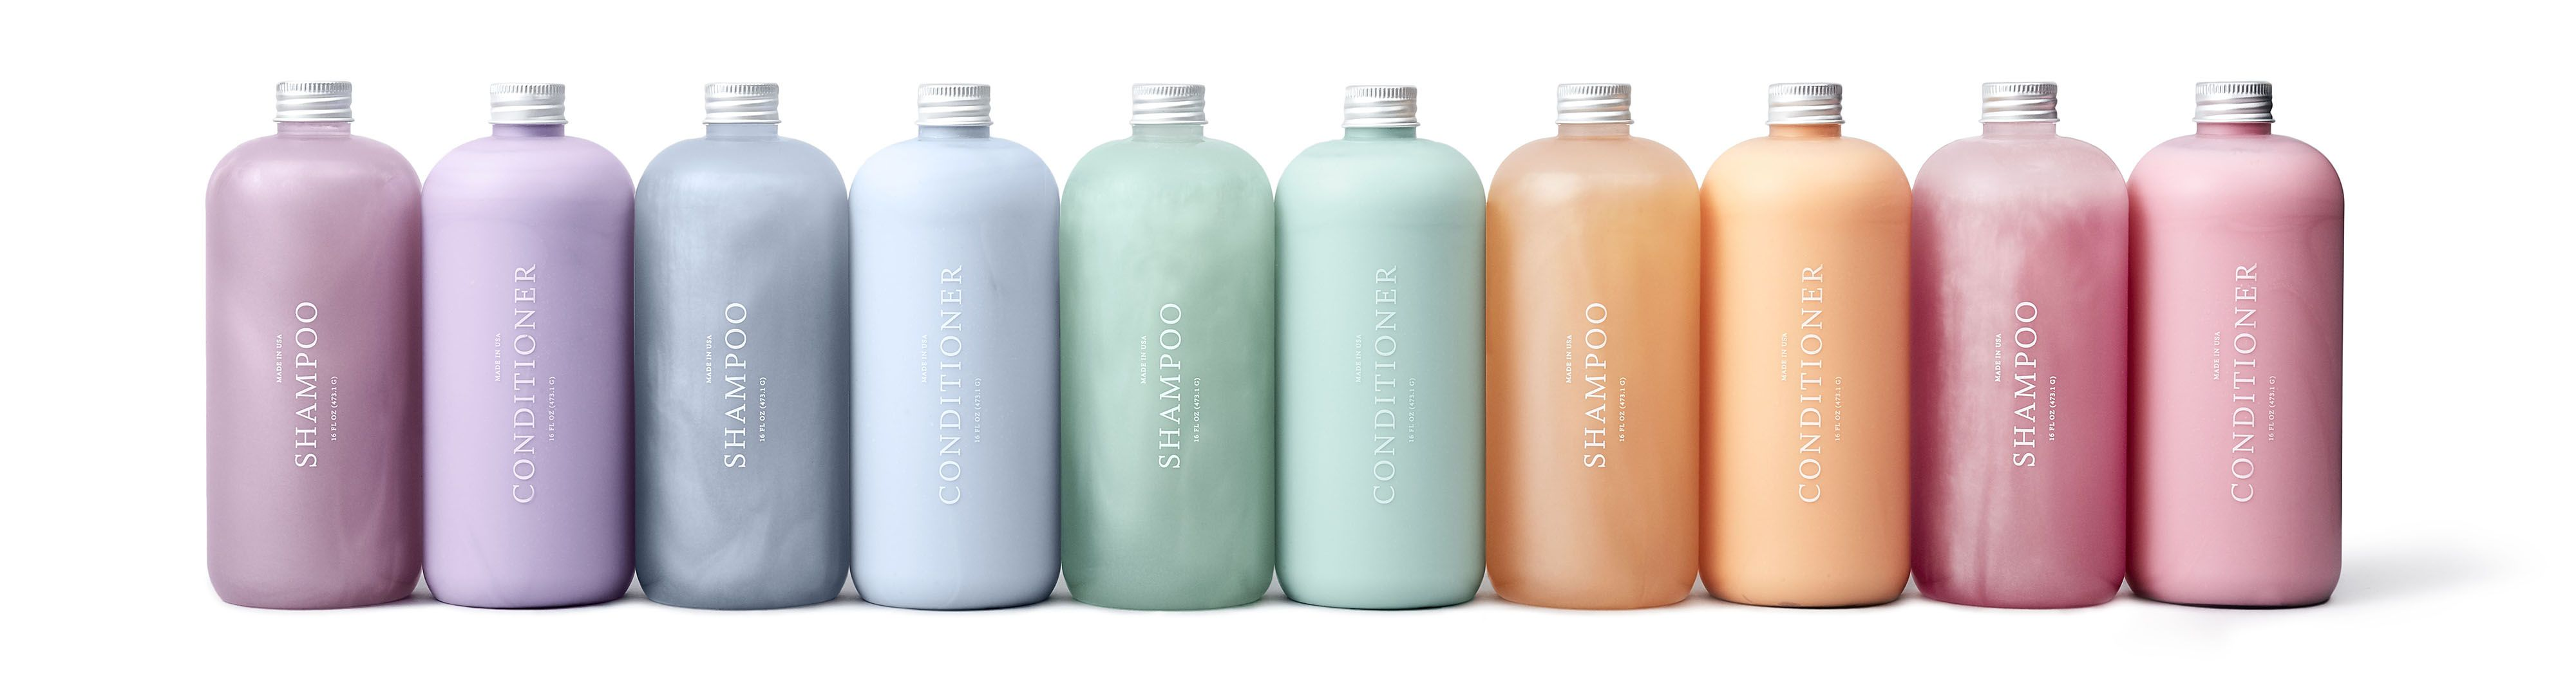 Personalized Shampoo and Conditioner Function of Beauty